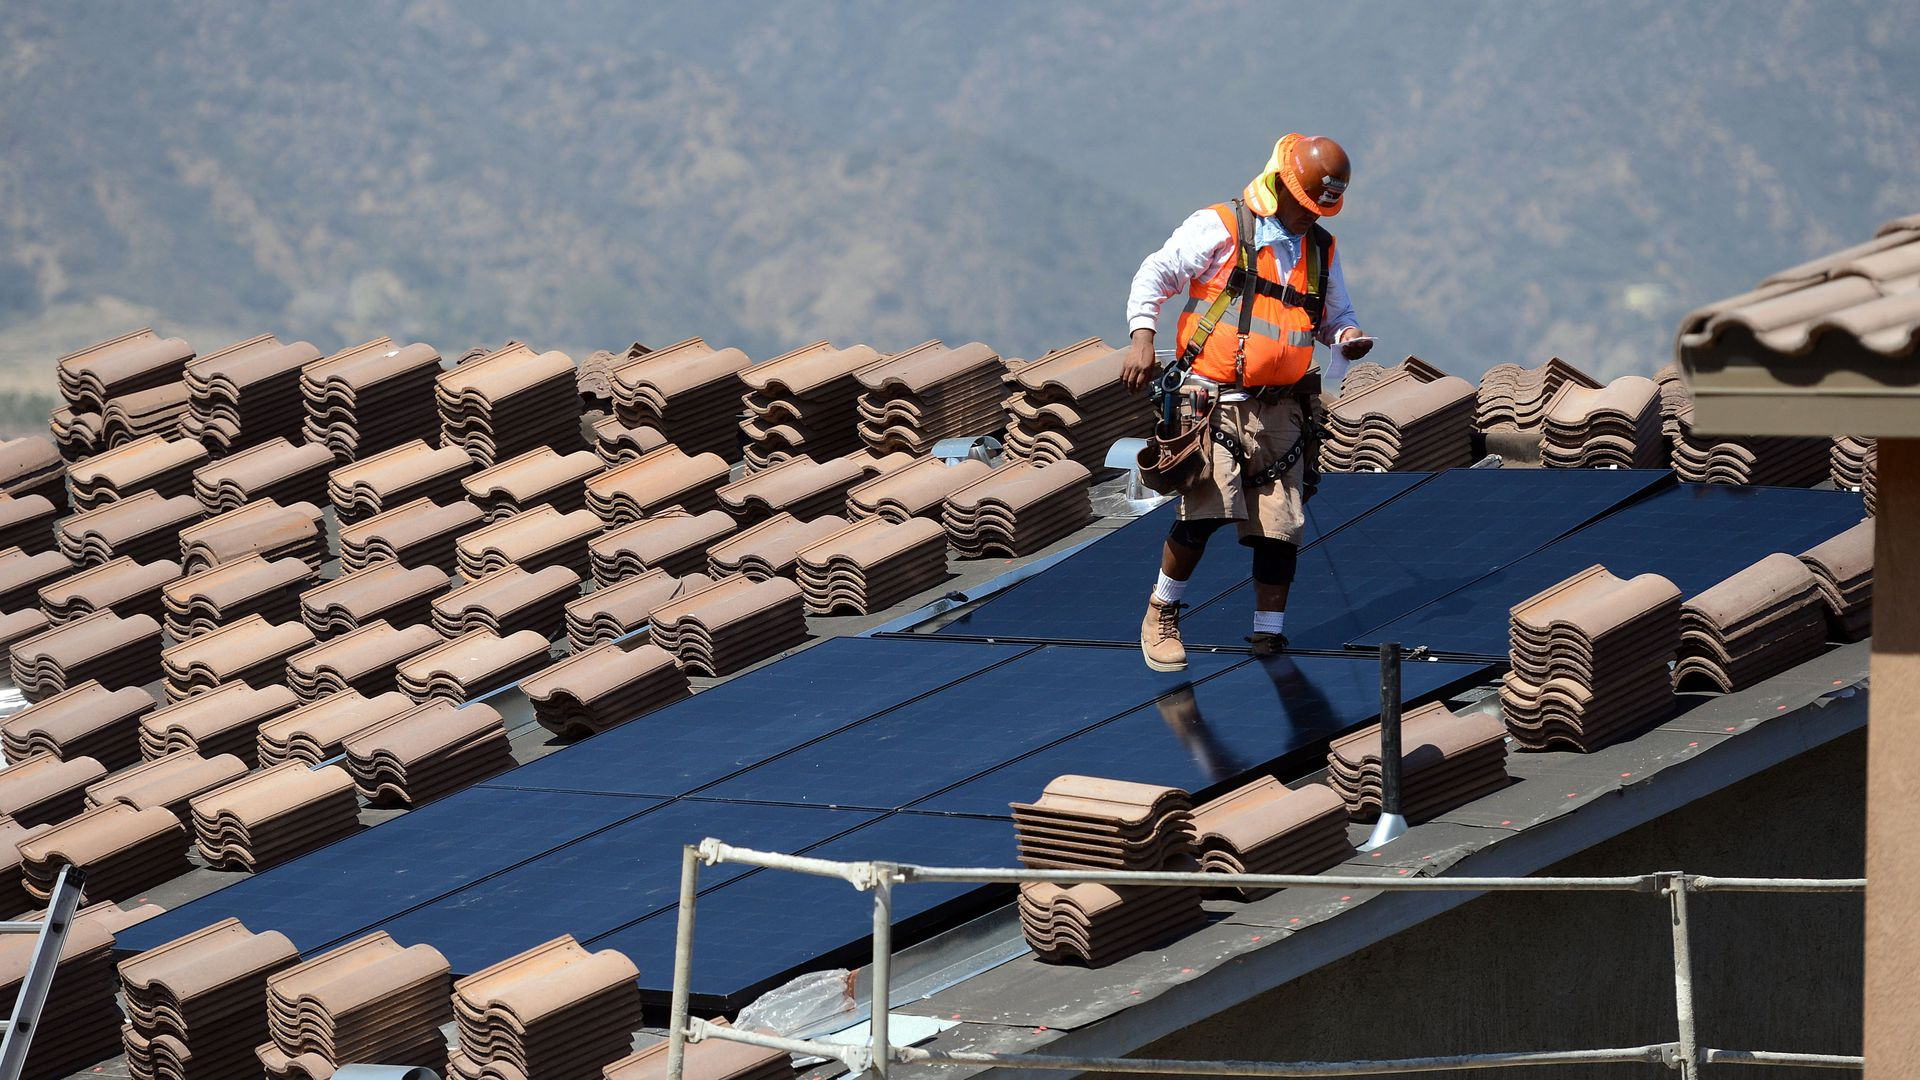 Workers install solar panels on the roofs of homes under construction south of Corona on May 3, 2018.